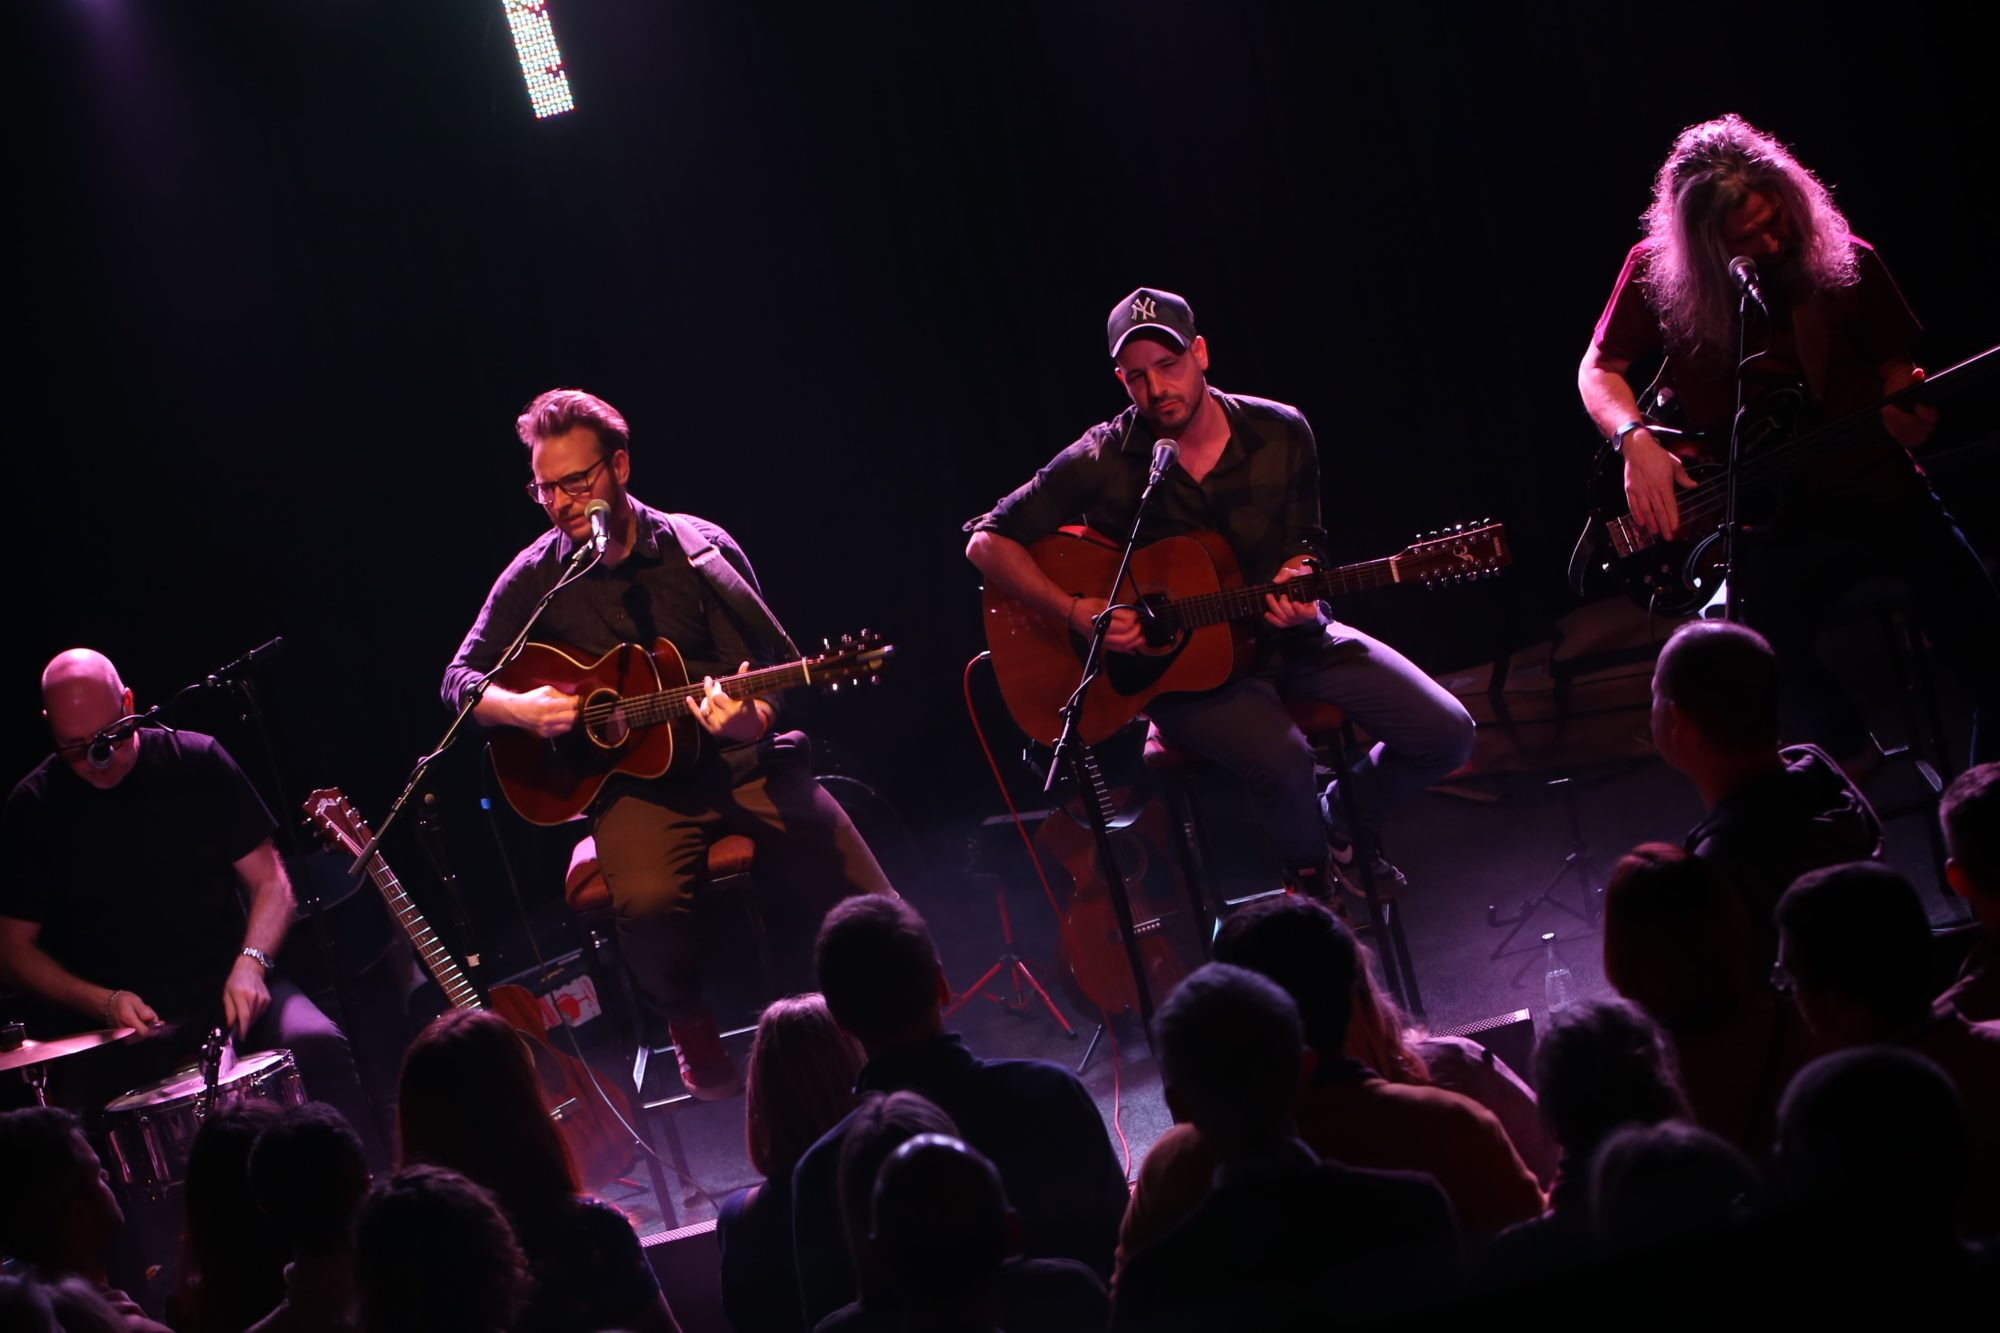 Turin Brakes go acoustic